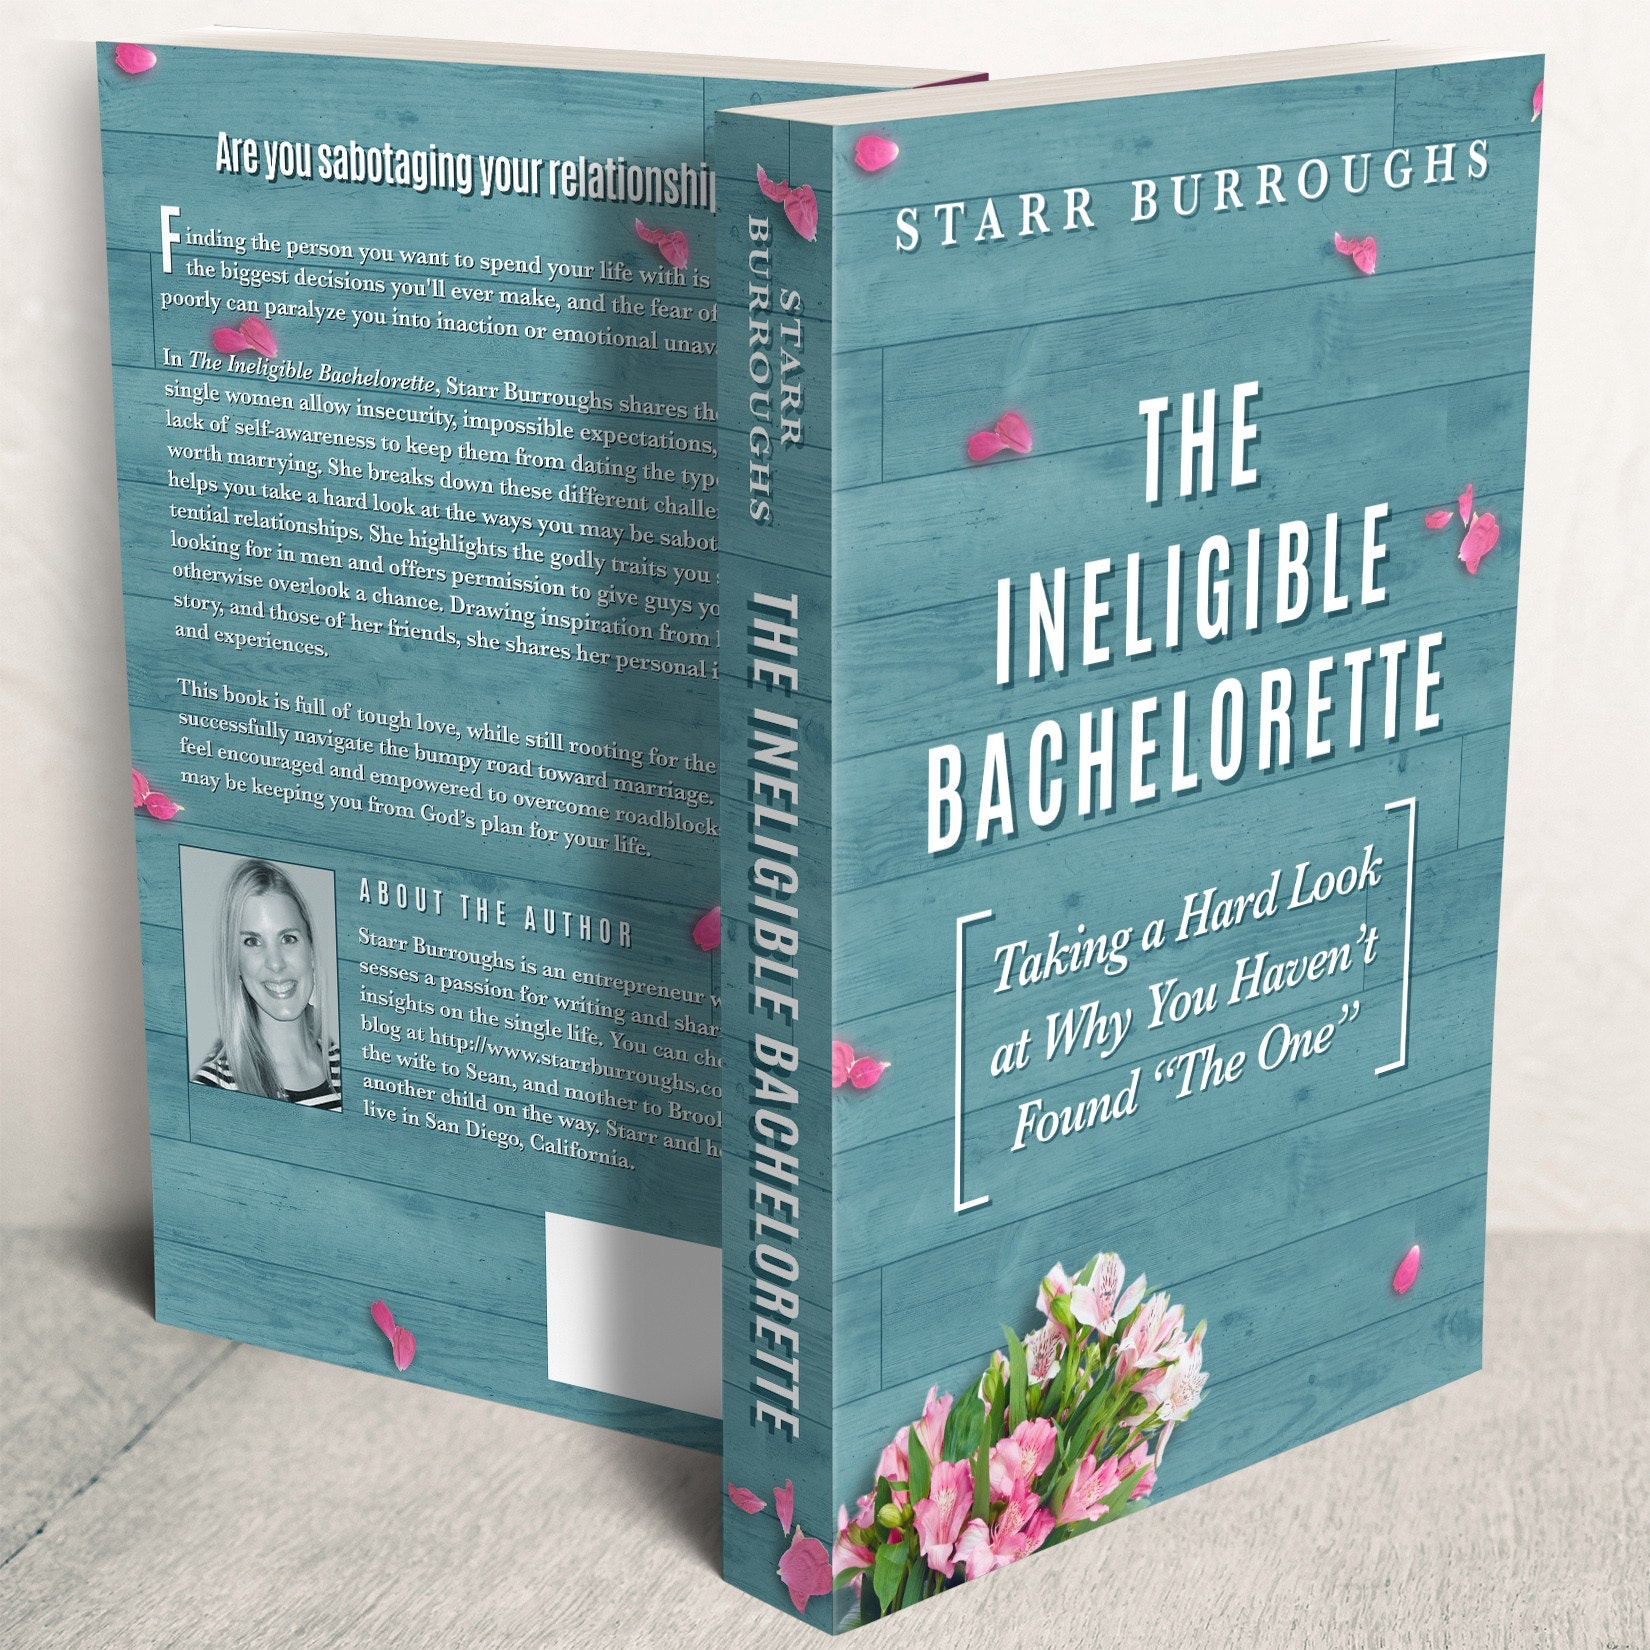 Book cover design featuring an image of discarded flowers